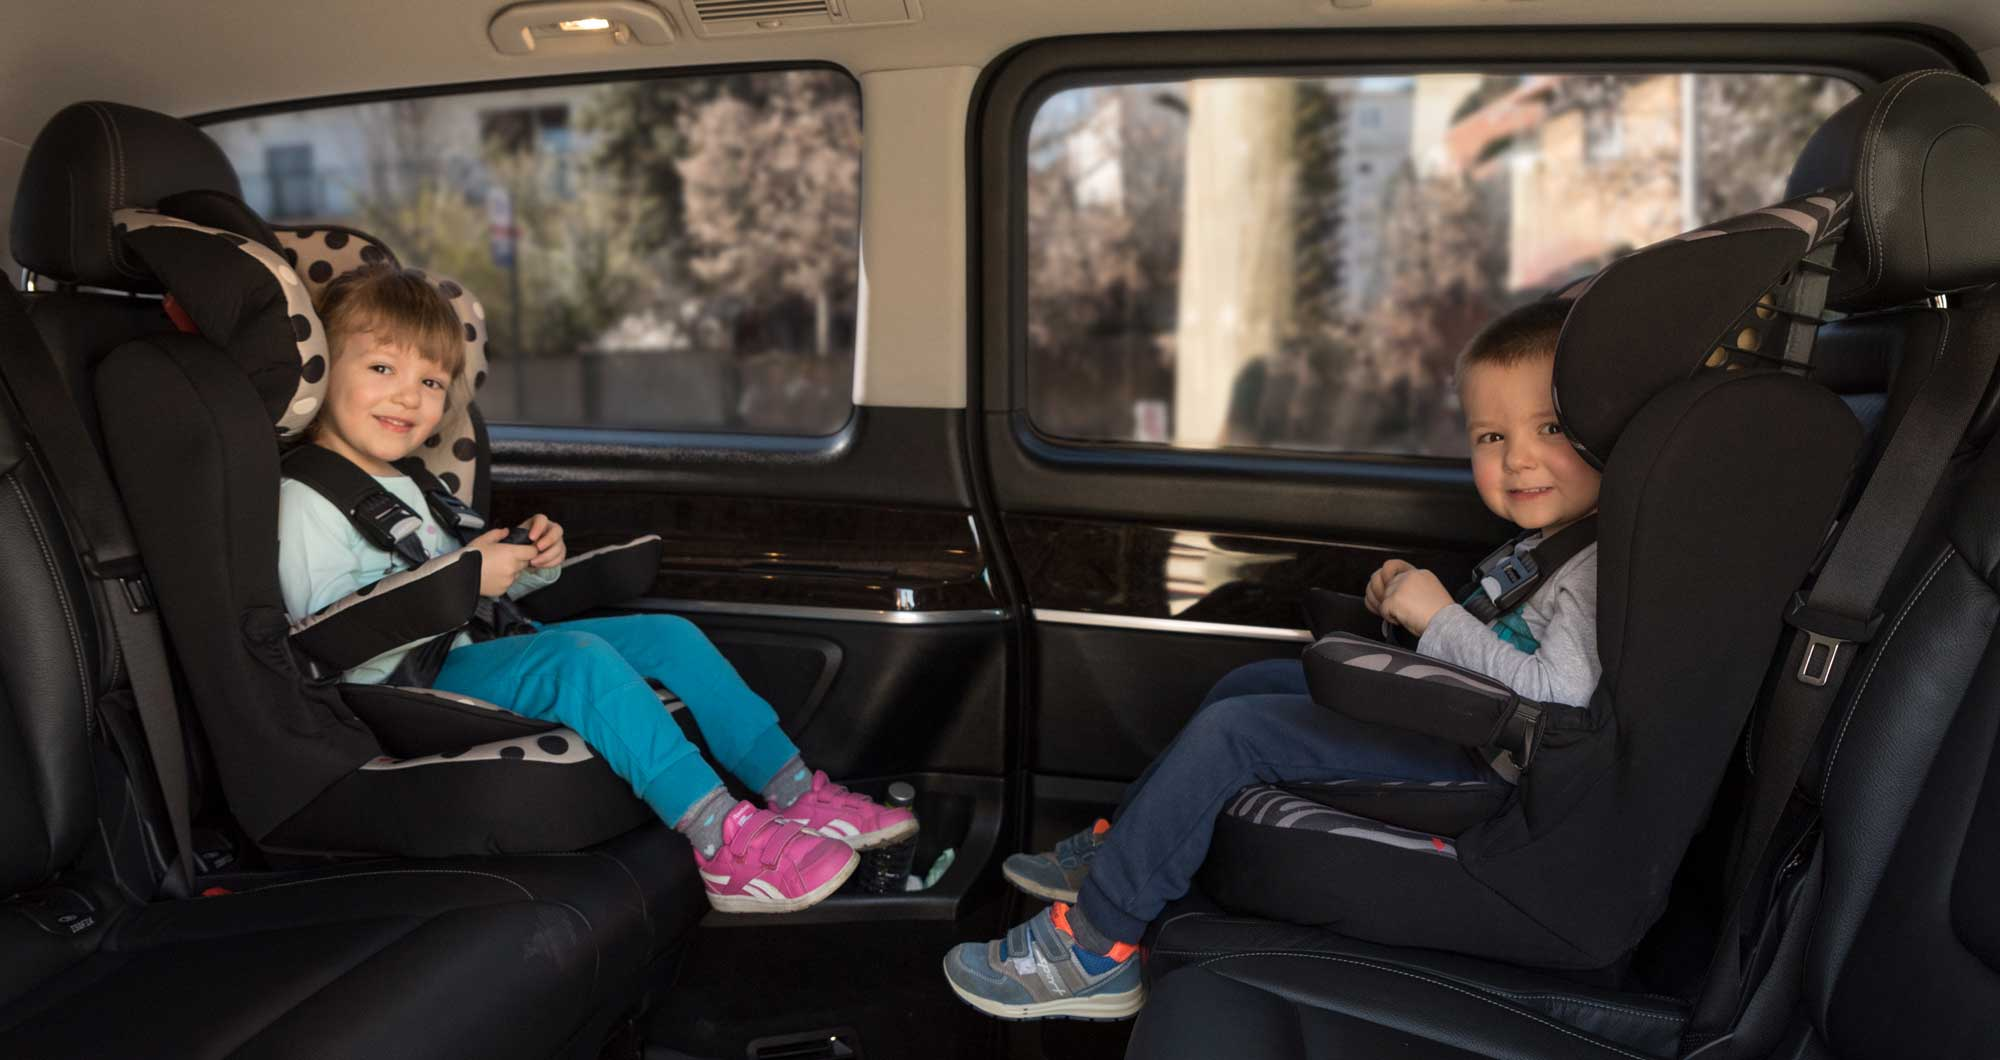 Two kids sitting in the back of the van in their child seats